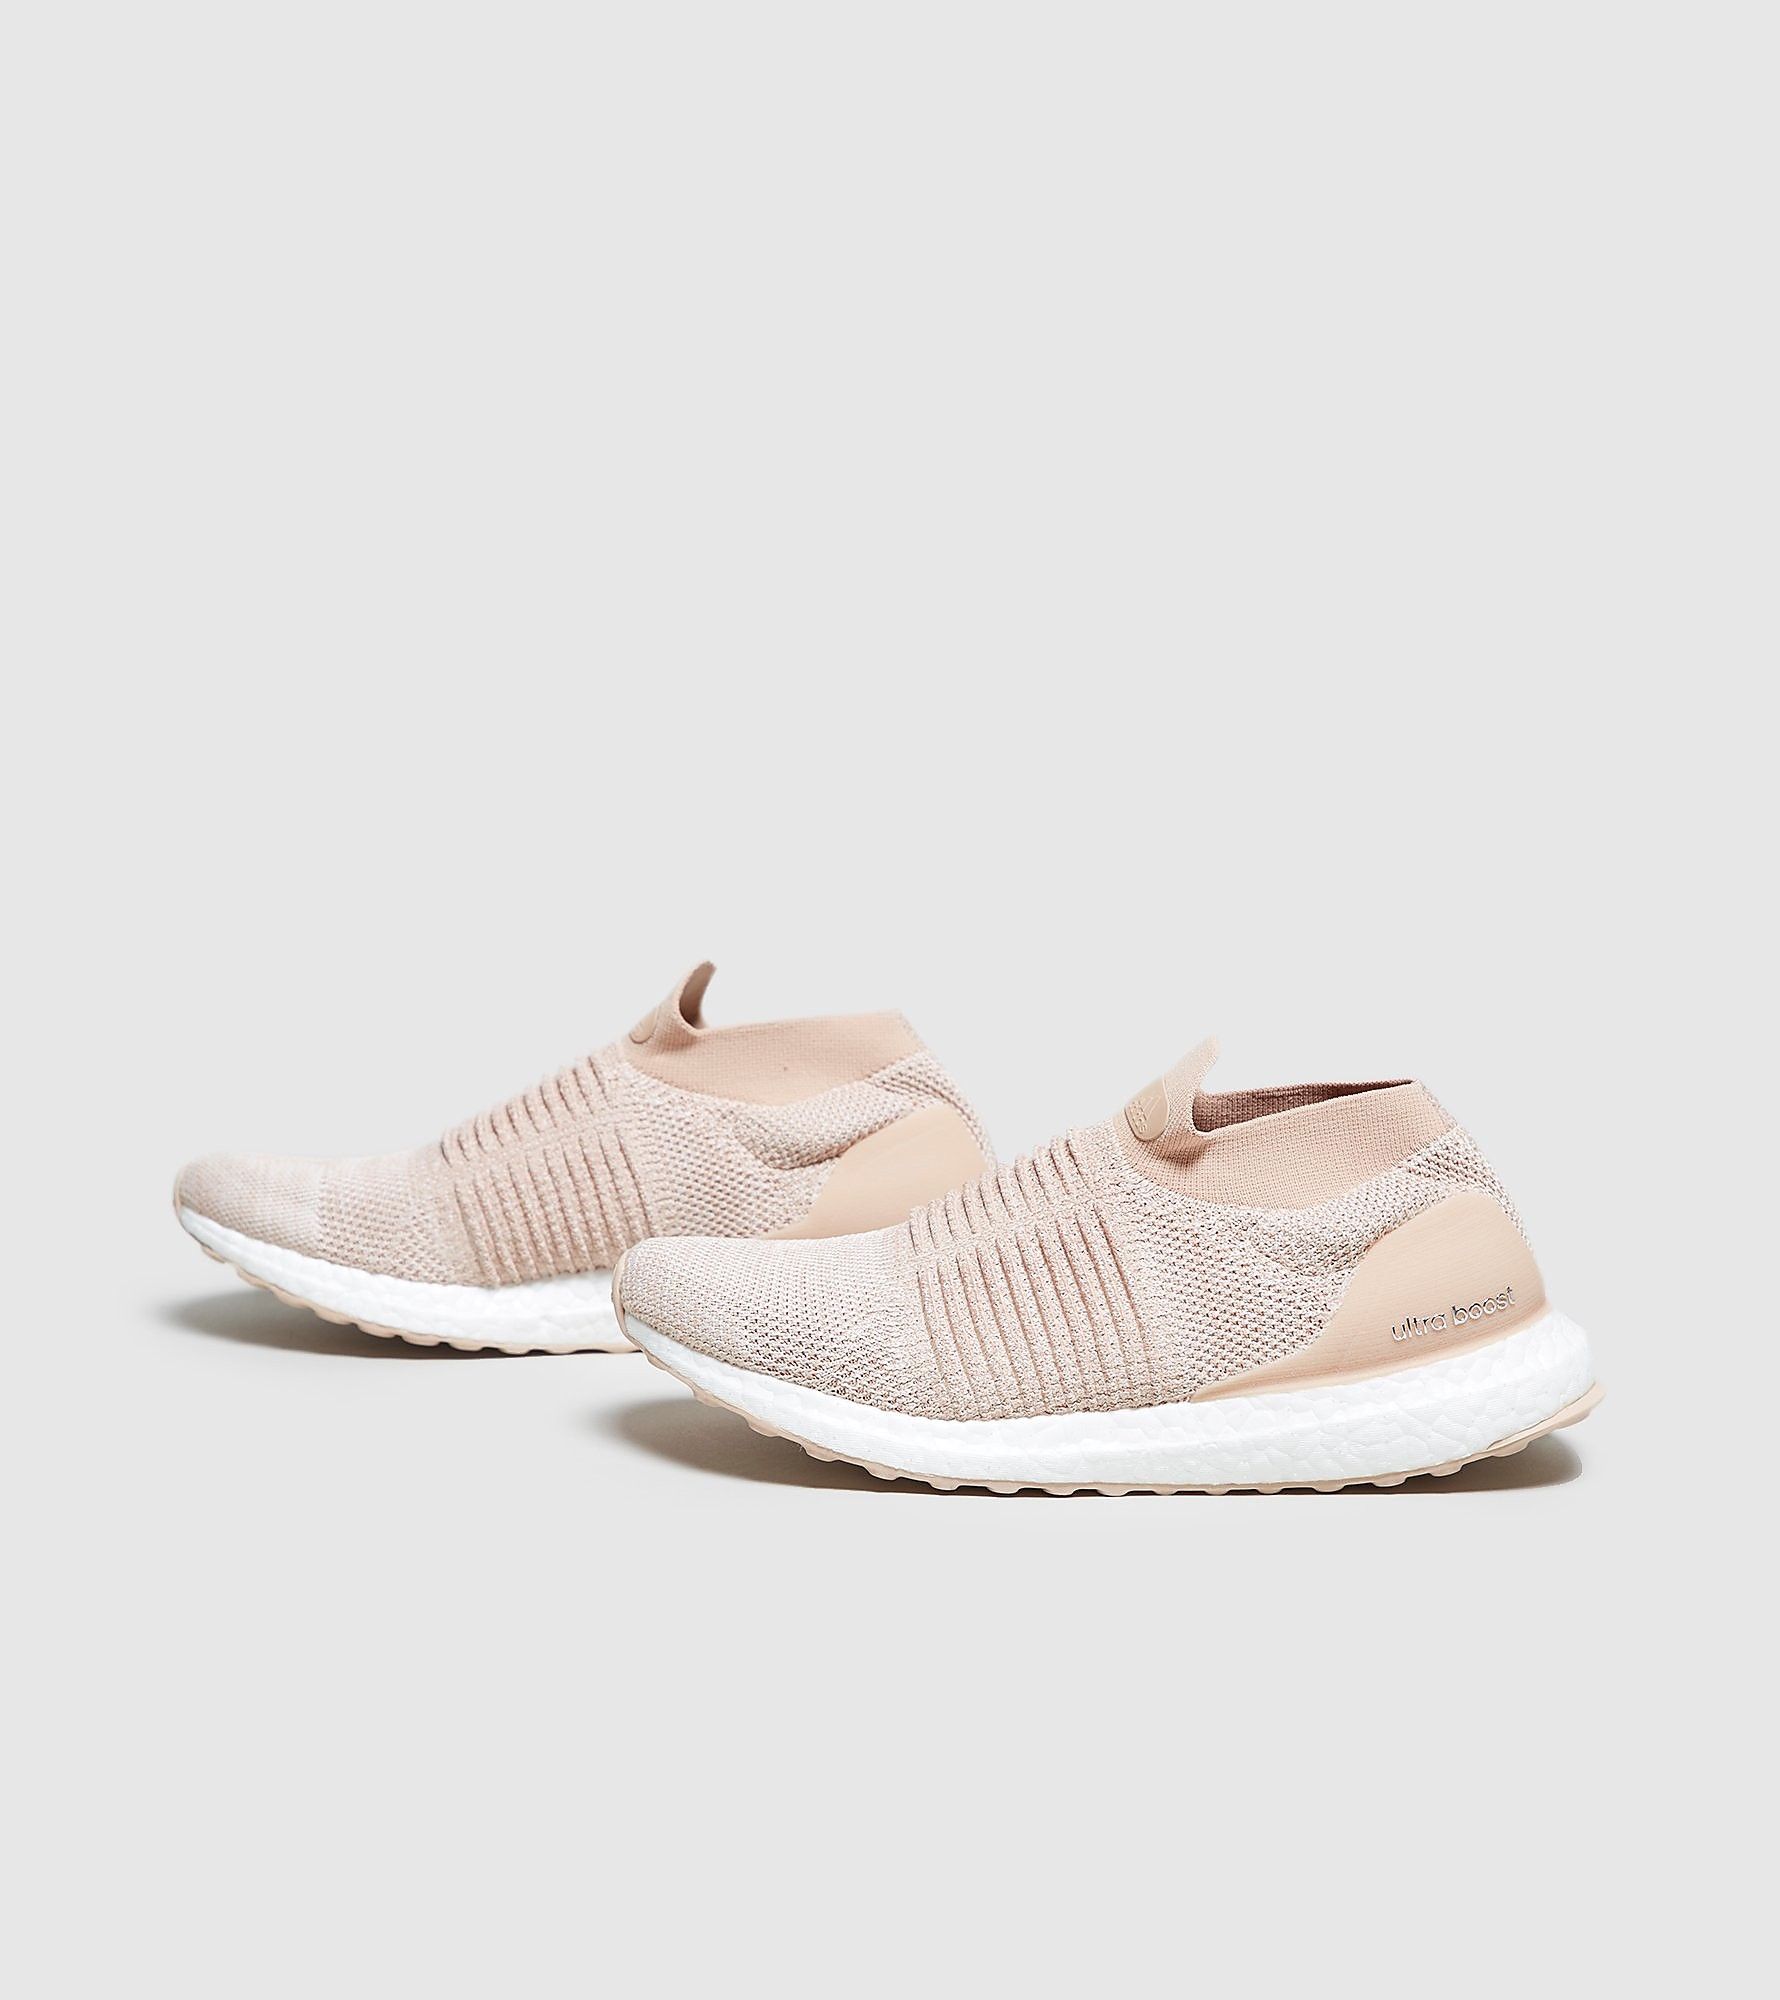 adidas UltraBoost Laceless Women's